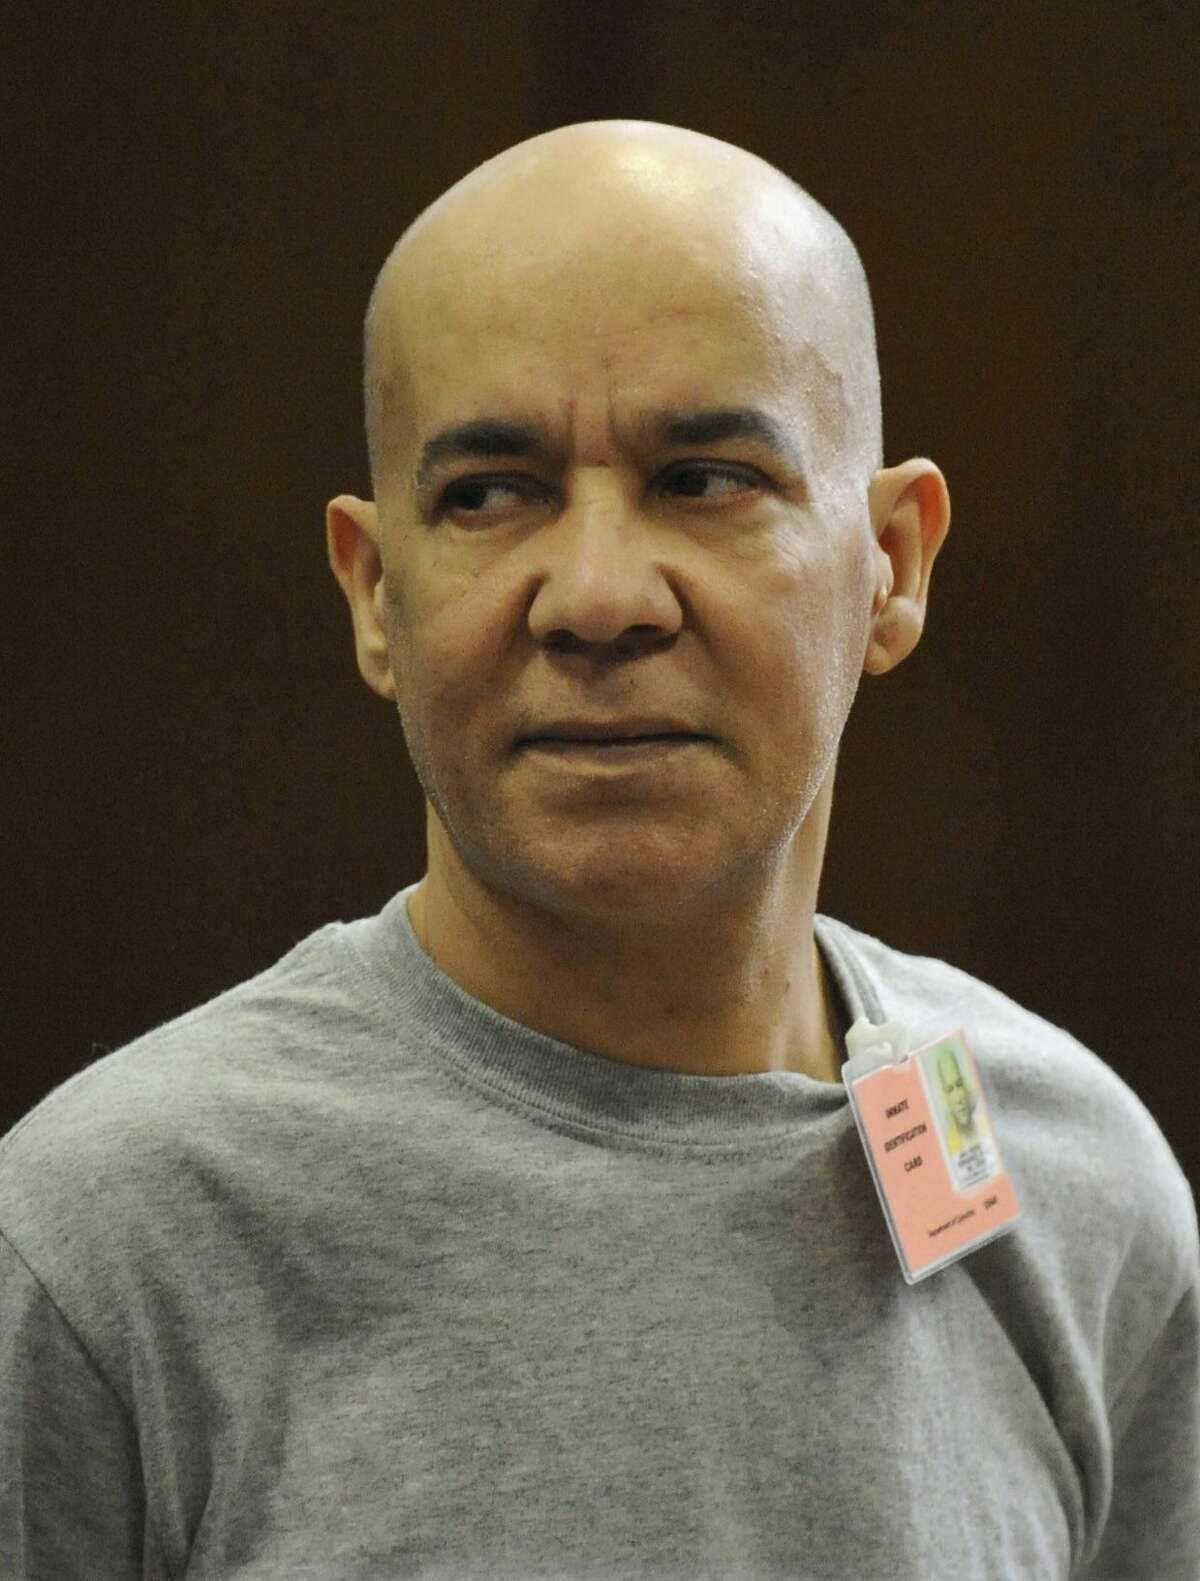 FILE - In this Nov. 15, 2012, file photo, Pedro Hernandez appears in Manhattan criminal court in New York. The 1979 disappearance of a young boy that stunned the nation has ended in an agonizing stalemate, with just one juror unconvinced that a former stock clerk was guilty of the crime that has confounded authorities for decades. The deadlocked jury spent 18 days in painstaking deliberations poring over evidence and testimony, trying to decide whether to believe Pedro Hernandez's confession that he choked 6-year-old Etan Patz to death and dumped his body a few blocks away.